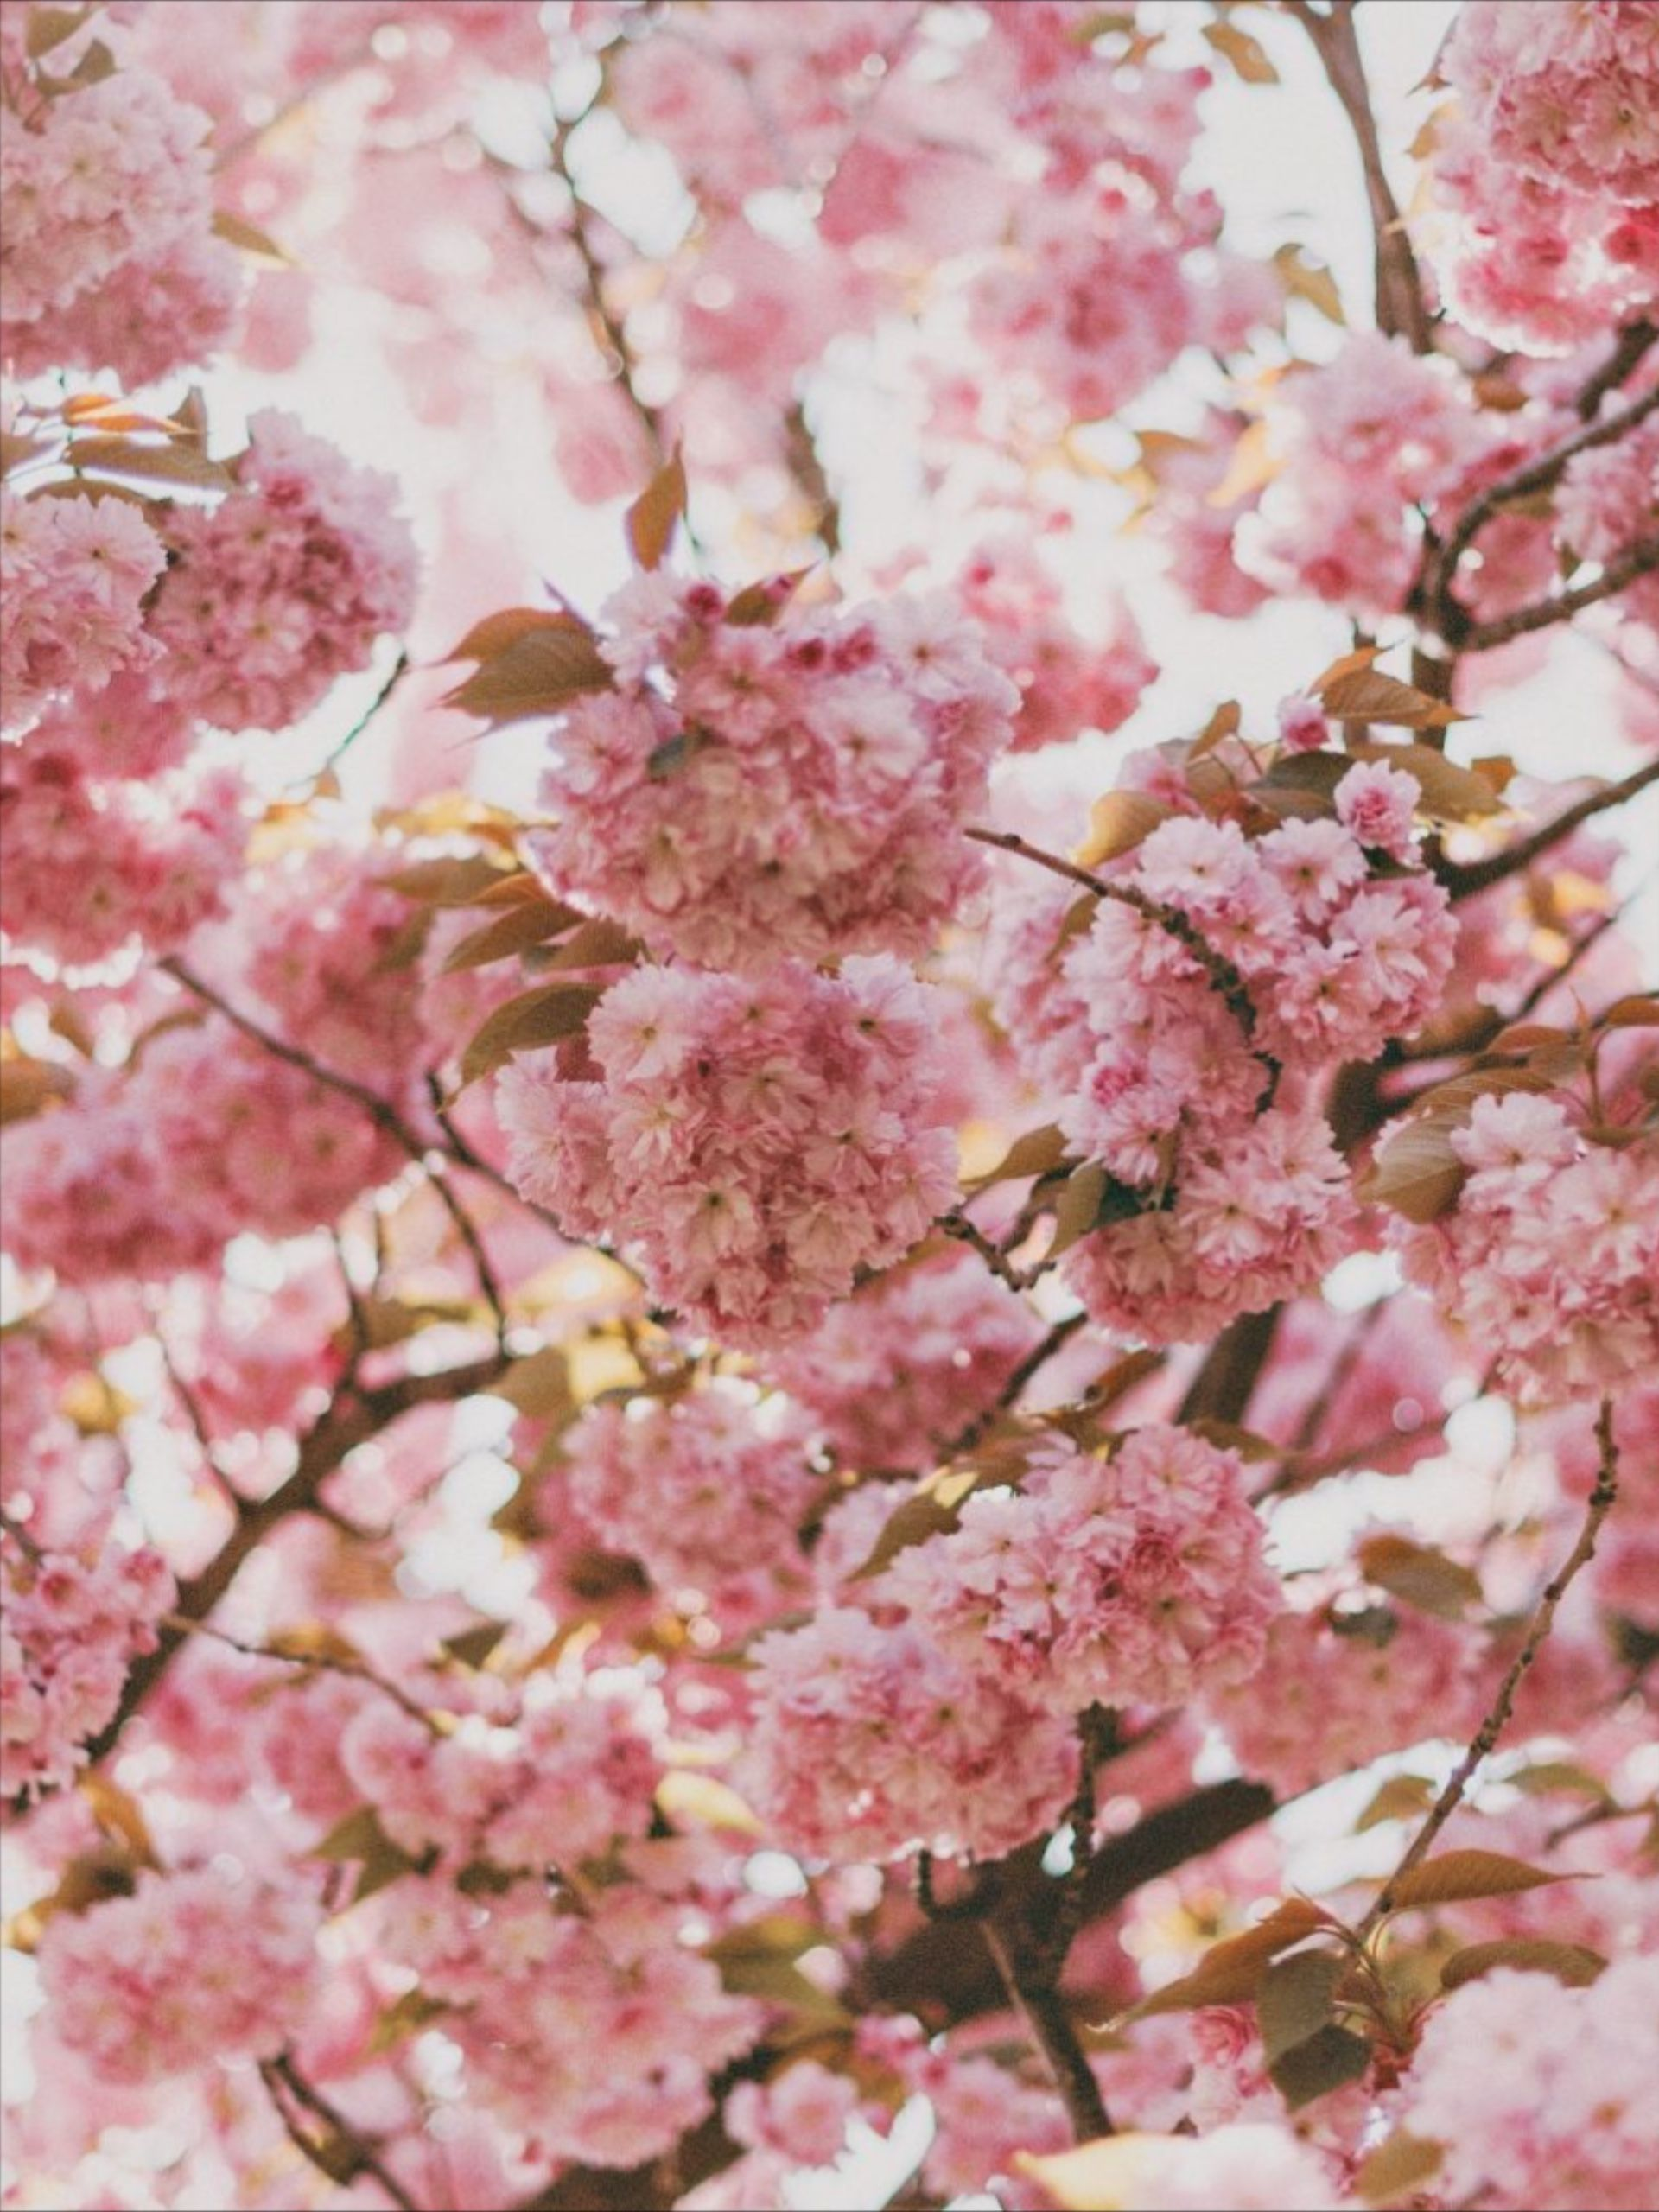 Valentine S Day Gifts For Him And Her In 2020 Cherry Blossom Wallpaper Wallpaper Nature Flowers Flower Wallpaper